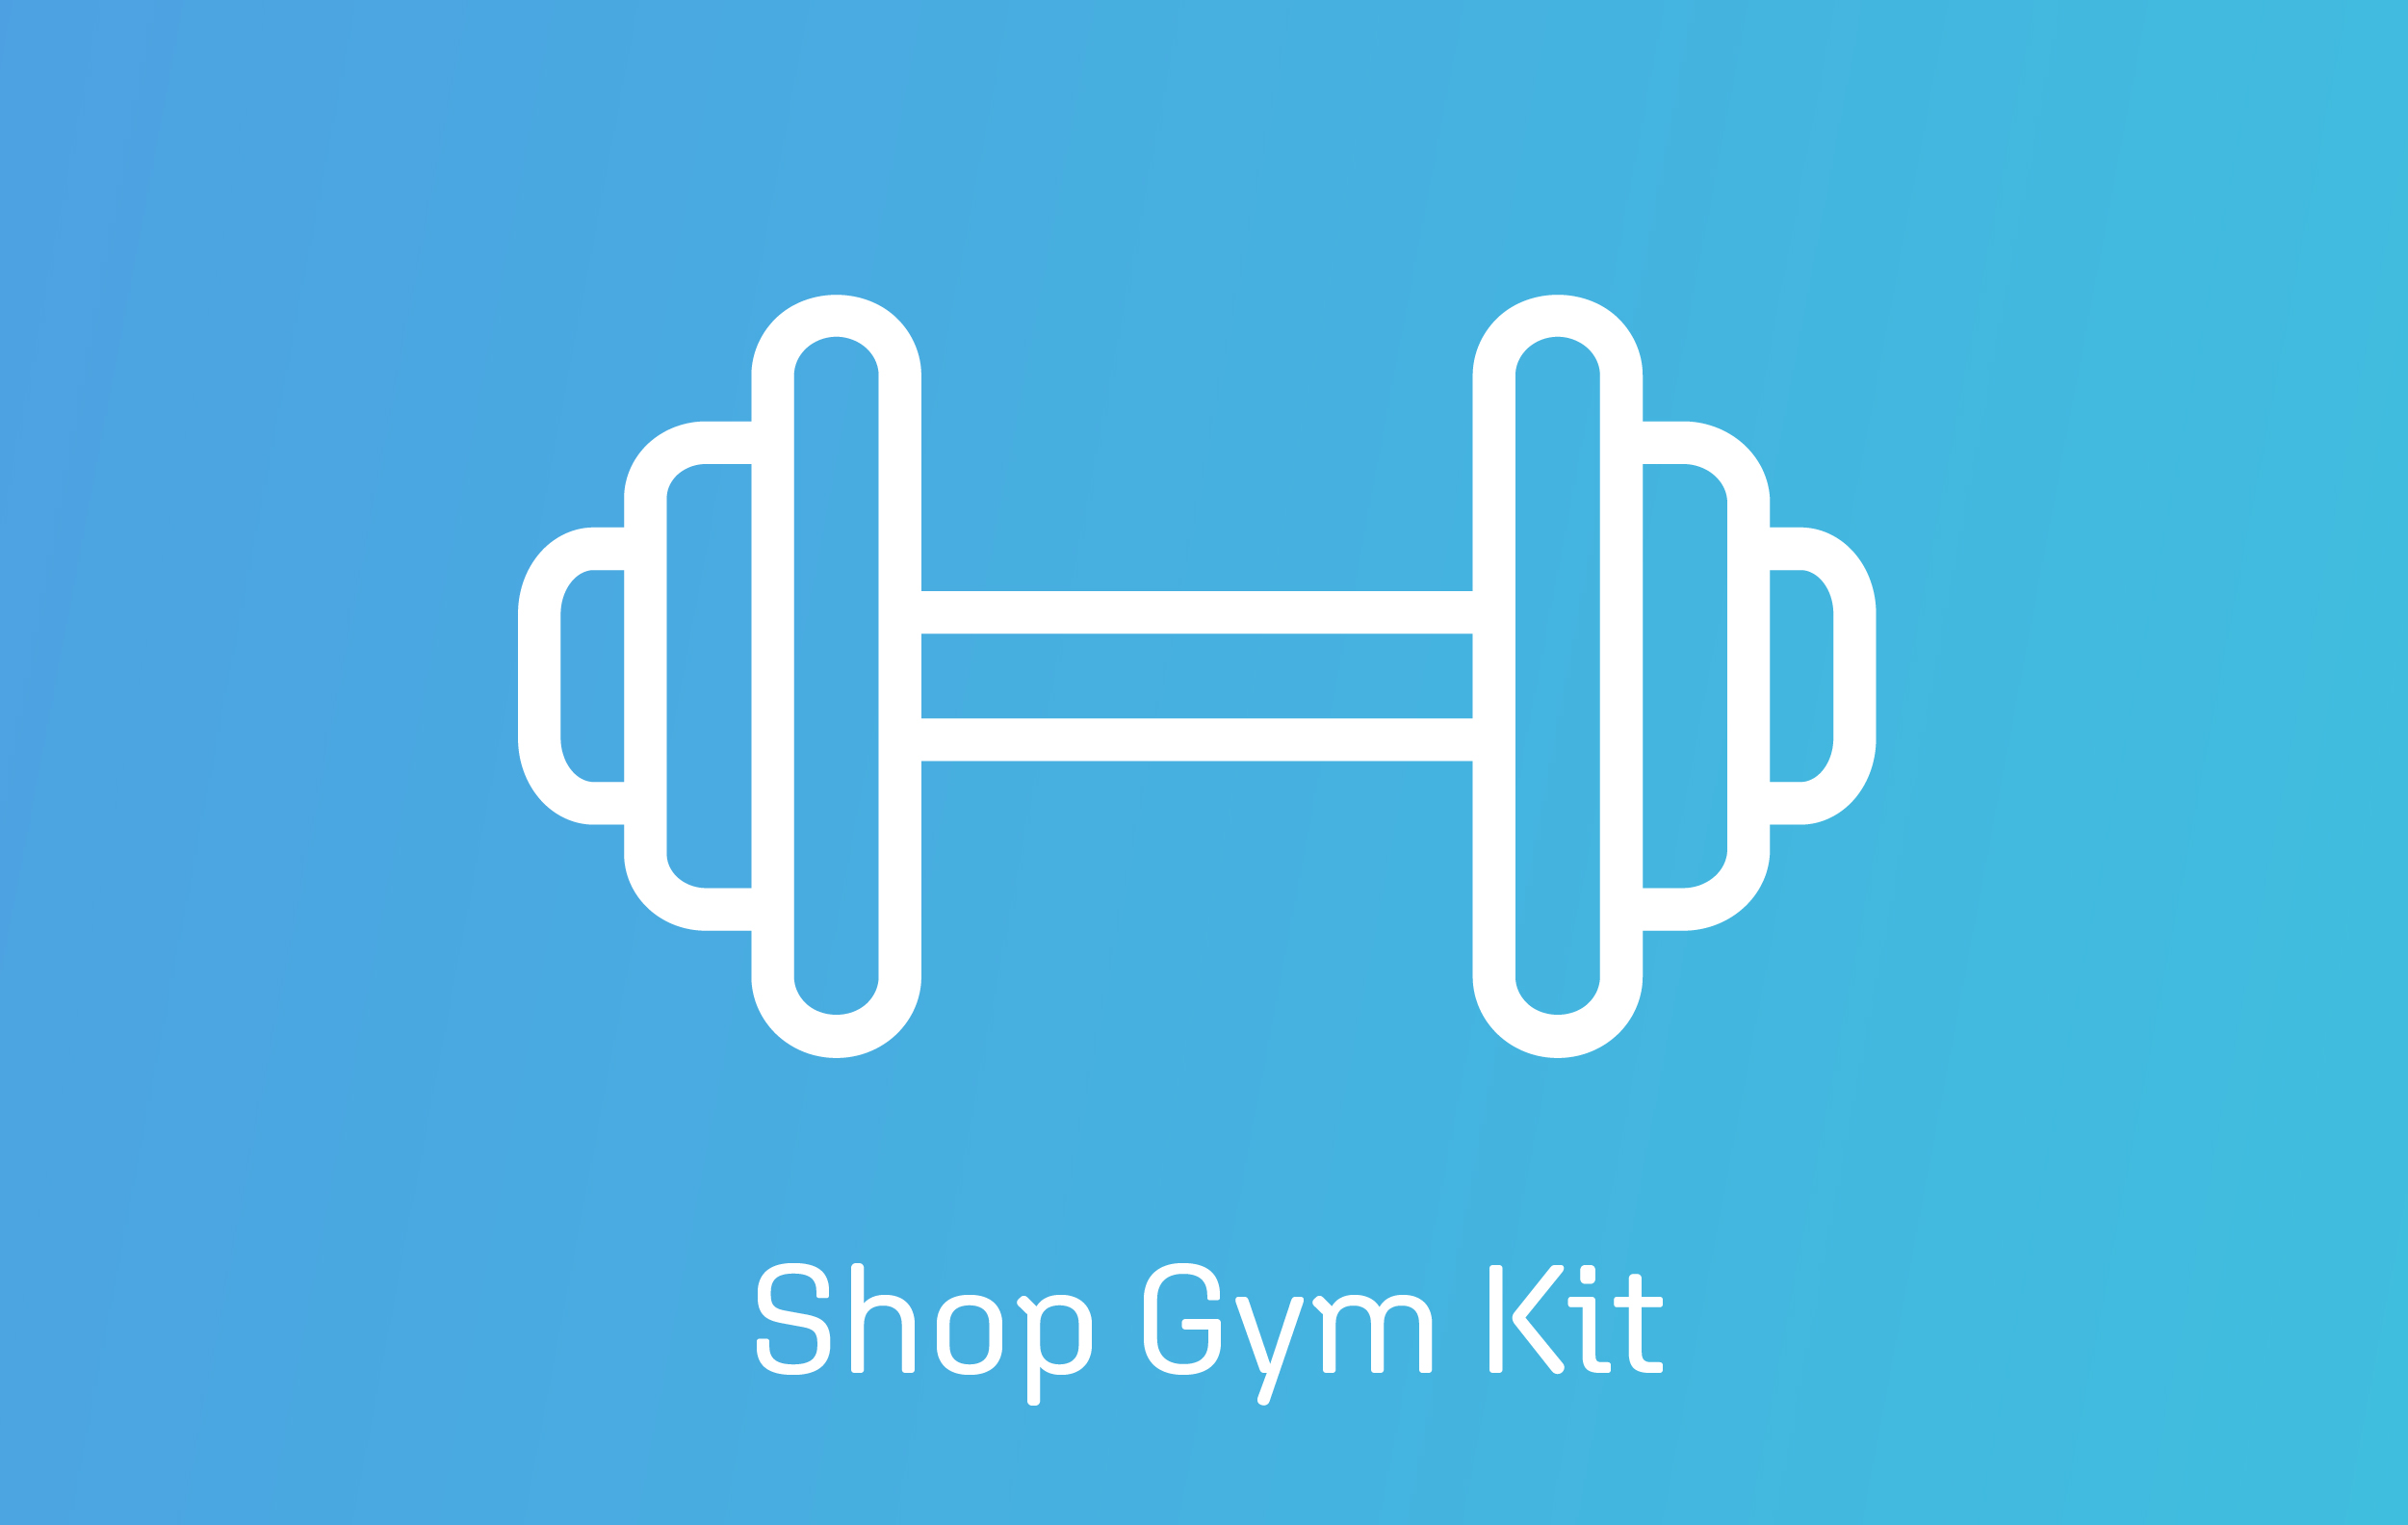 Shop Gym Kit